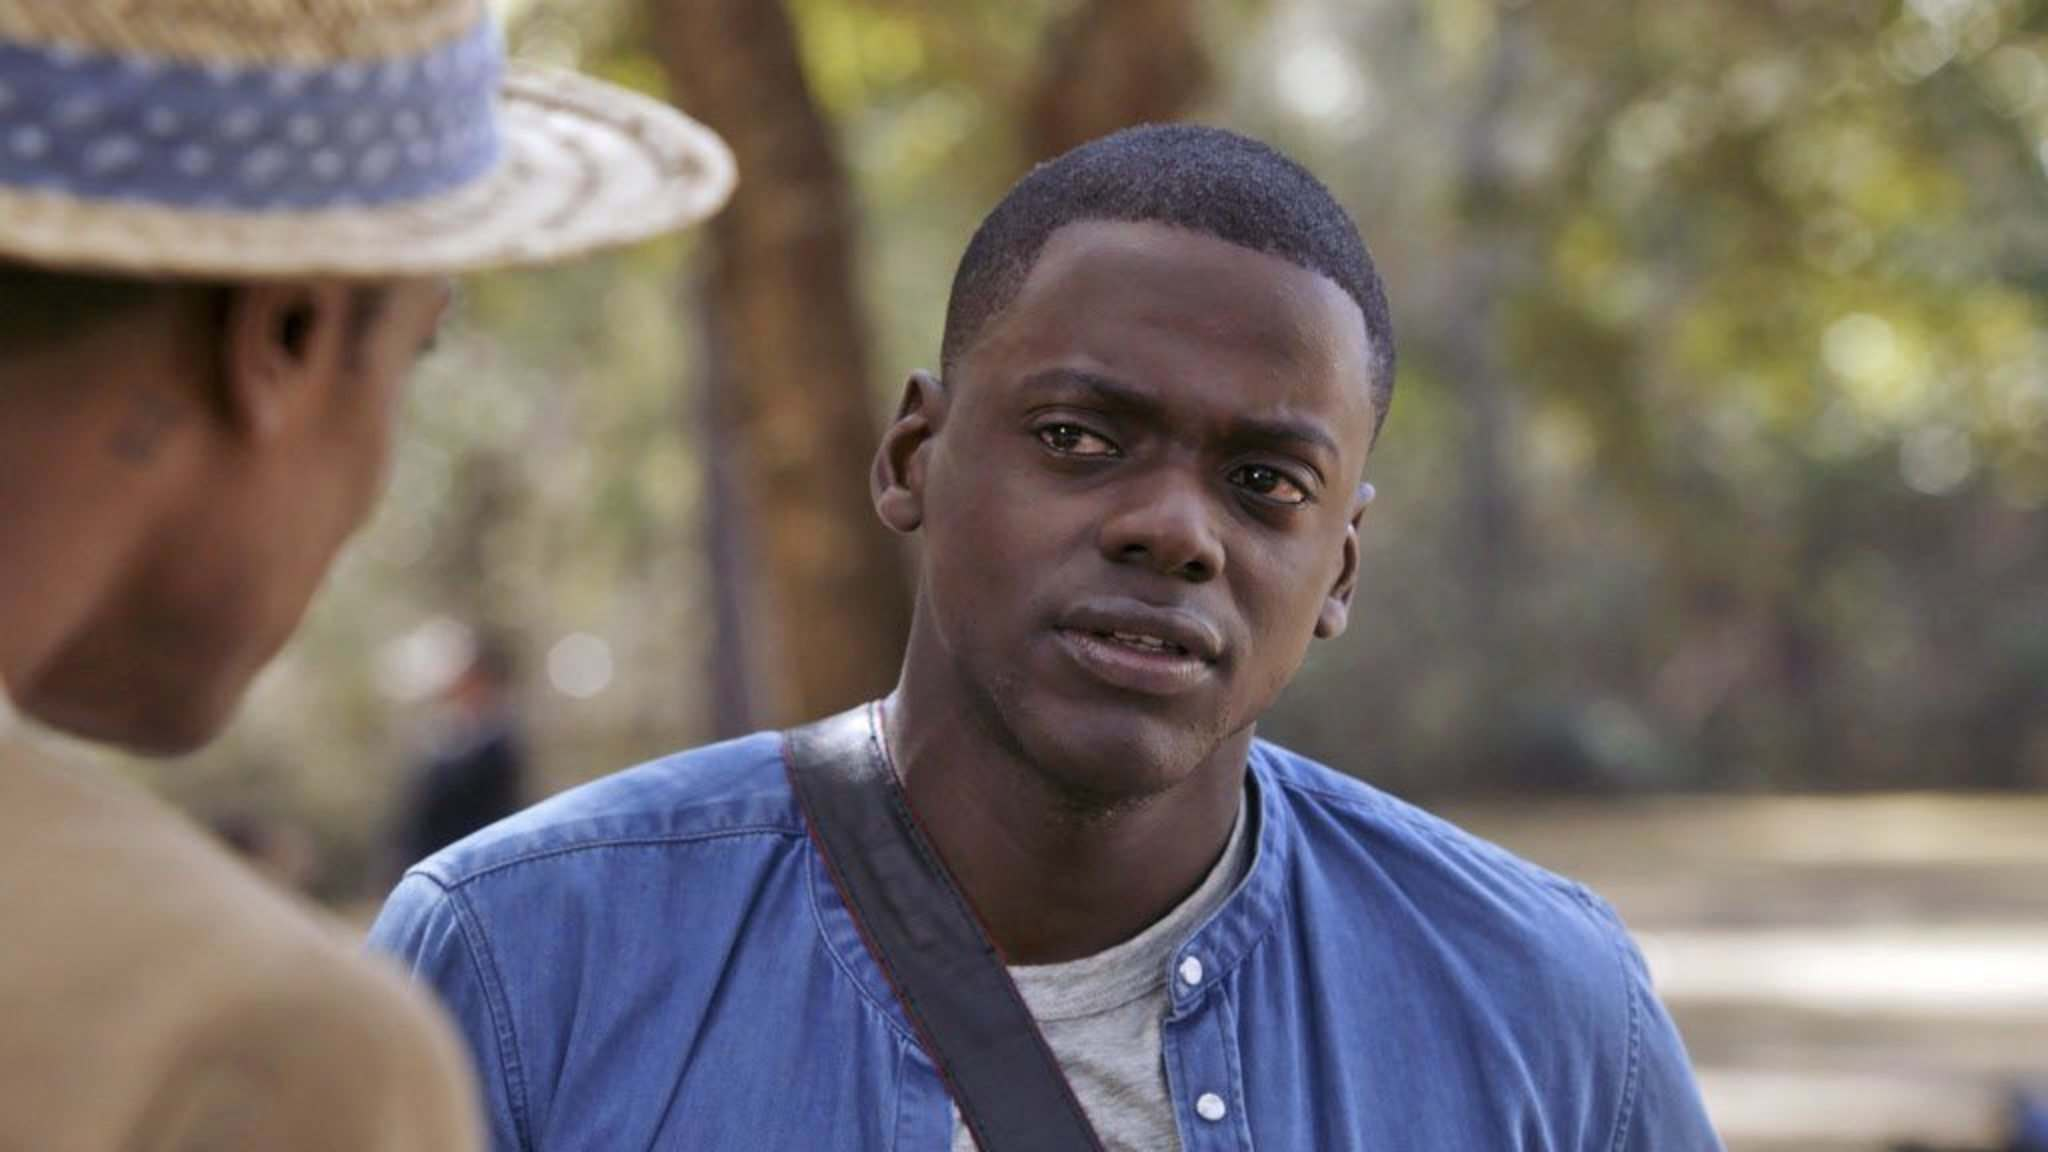 Lakeith Stanfield (left) and Daniel Kaluuya in Get Out, which would be a refreshing surprise if it won Best Picture. (Universal Pictures)